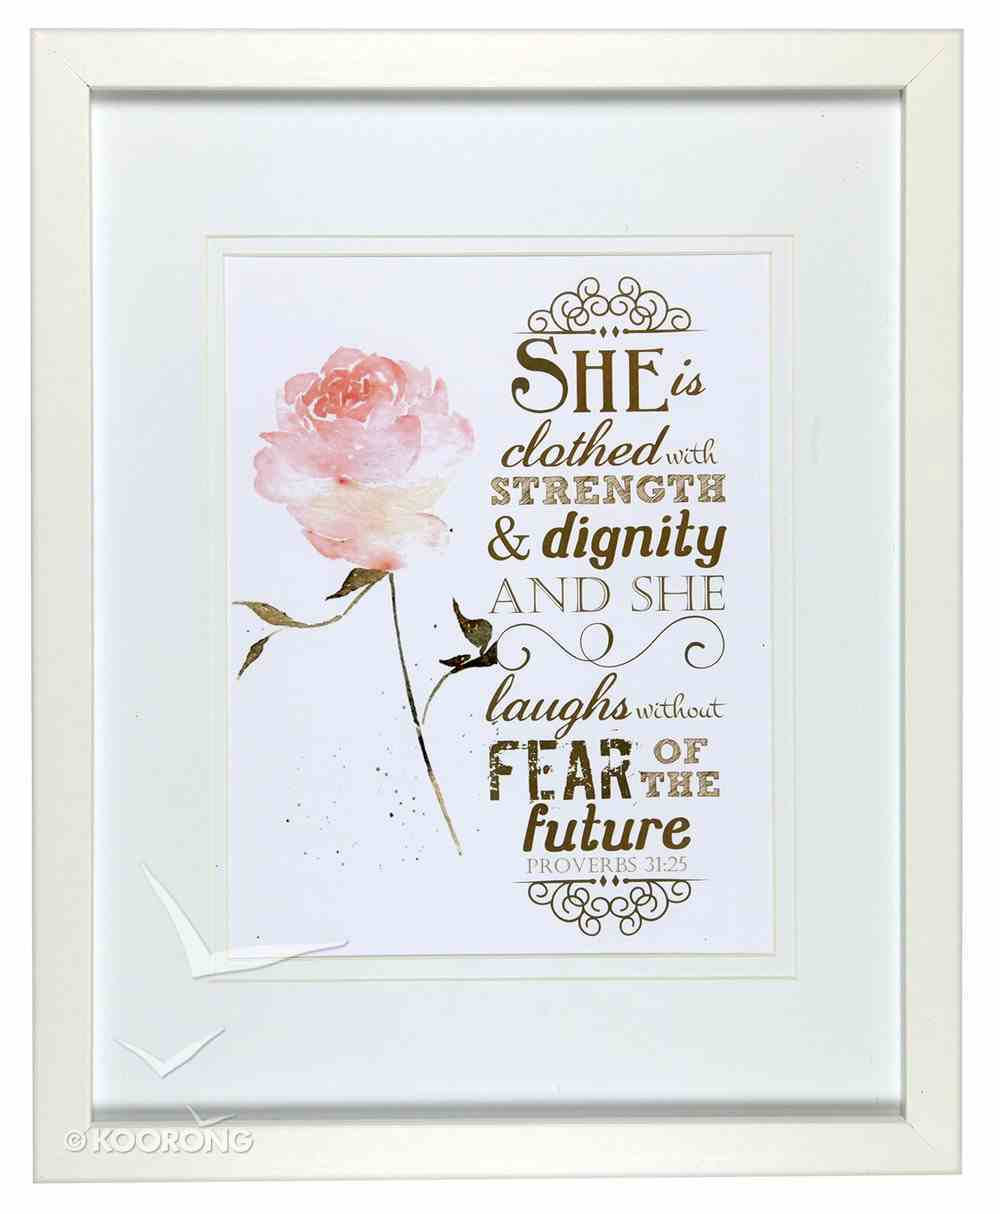 Medium Framed Print: Watercolour Rose, She is Clothed, Proverbs 31:25 Plaque